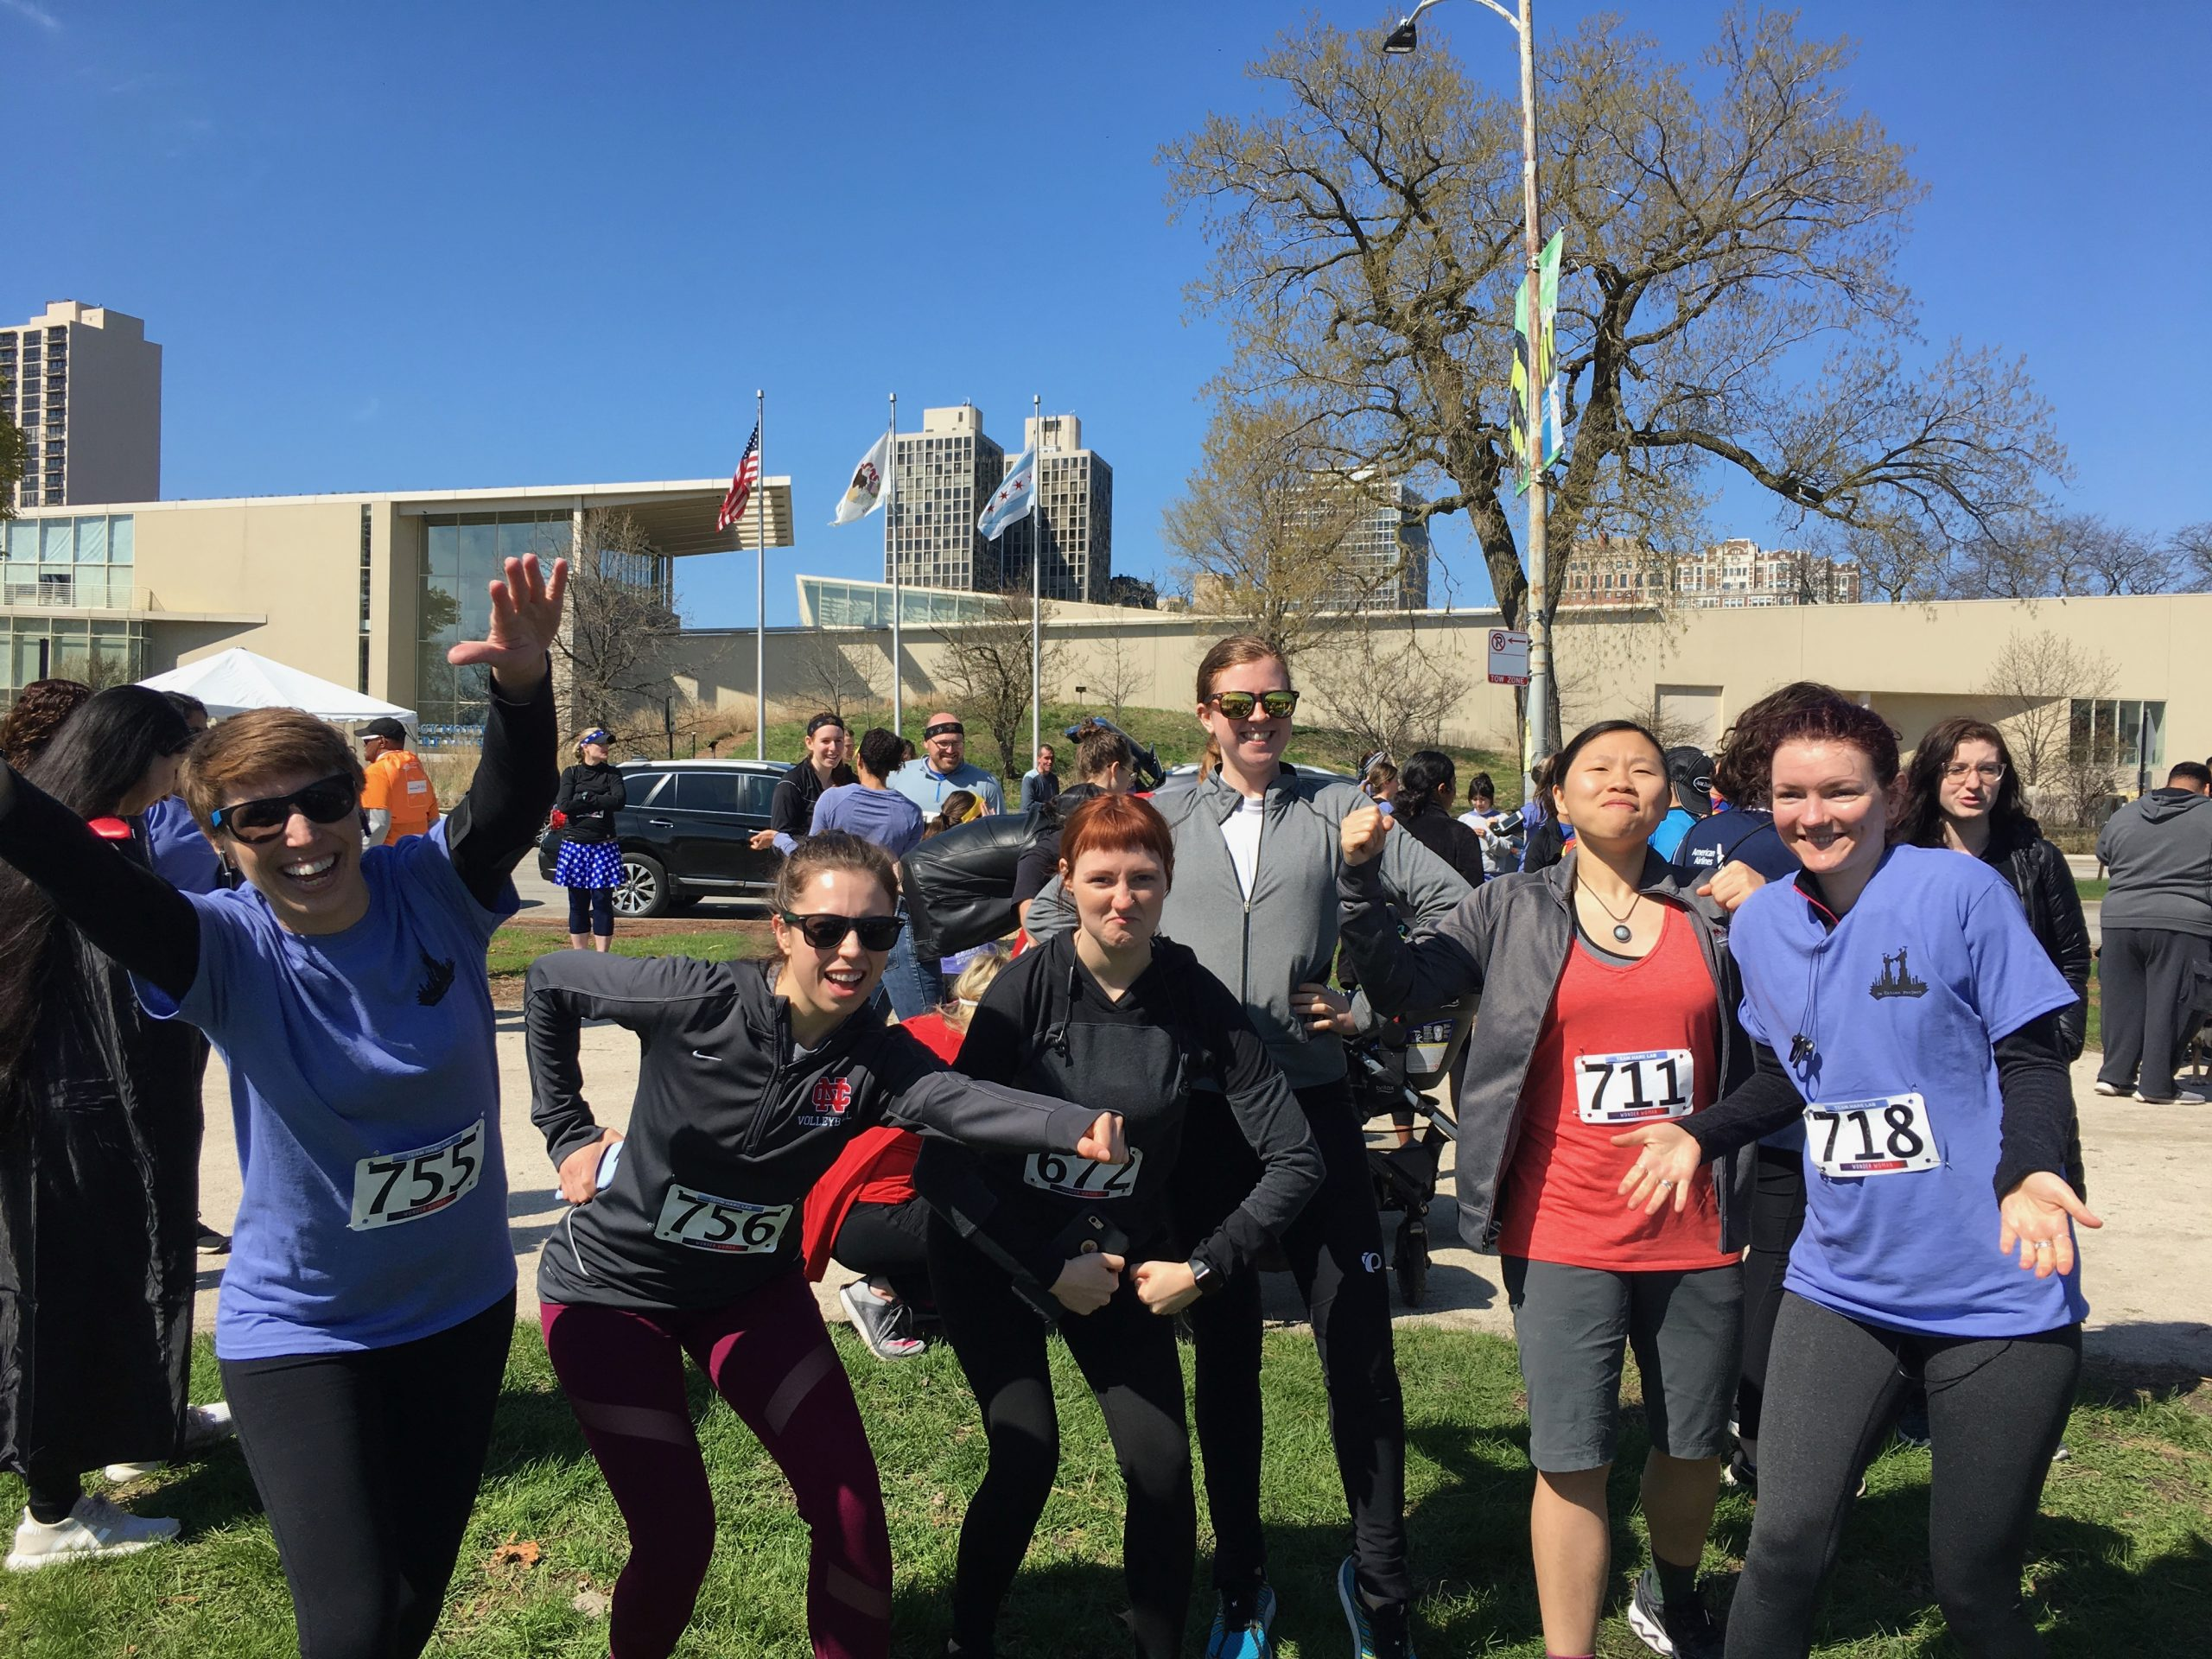 HARC Lab running the 2019 Cities Project Superhero 5k